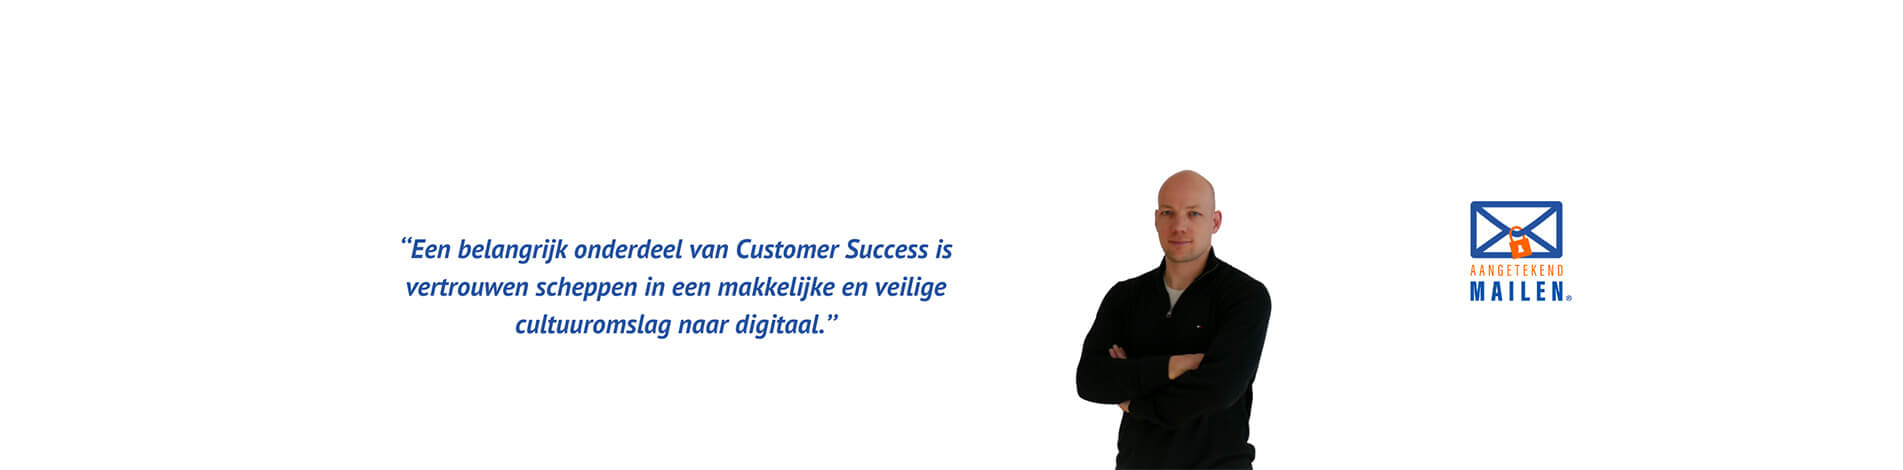 Maak kennis met… Ronald Boer, onze Customer Success Manager en Product Owner